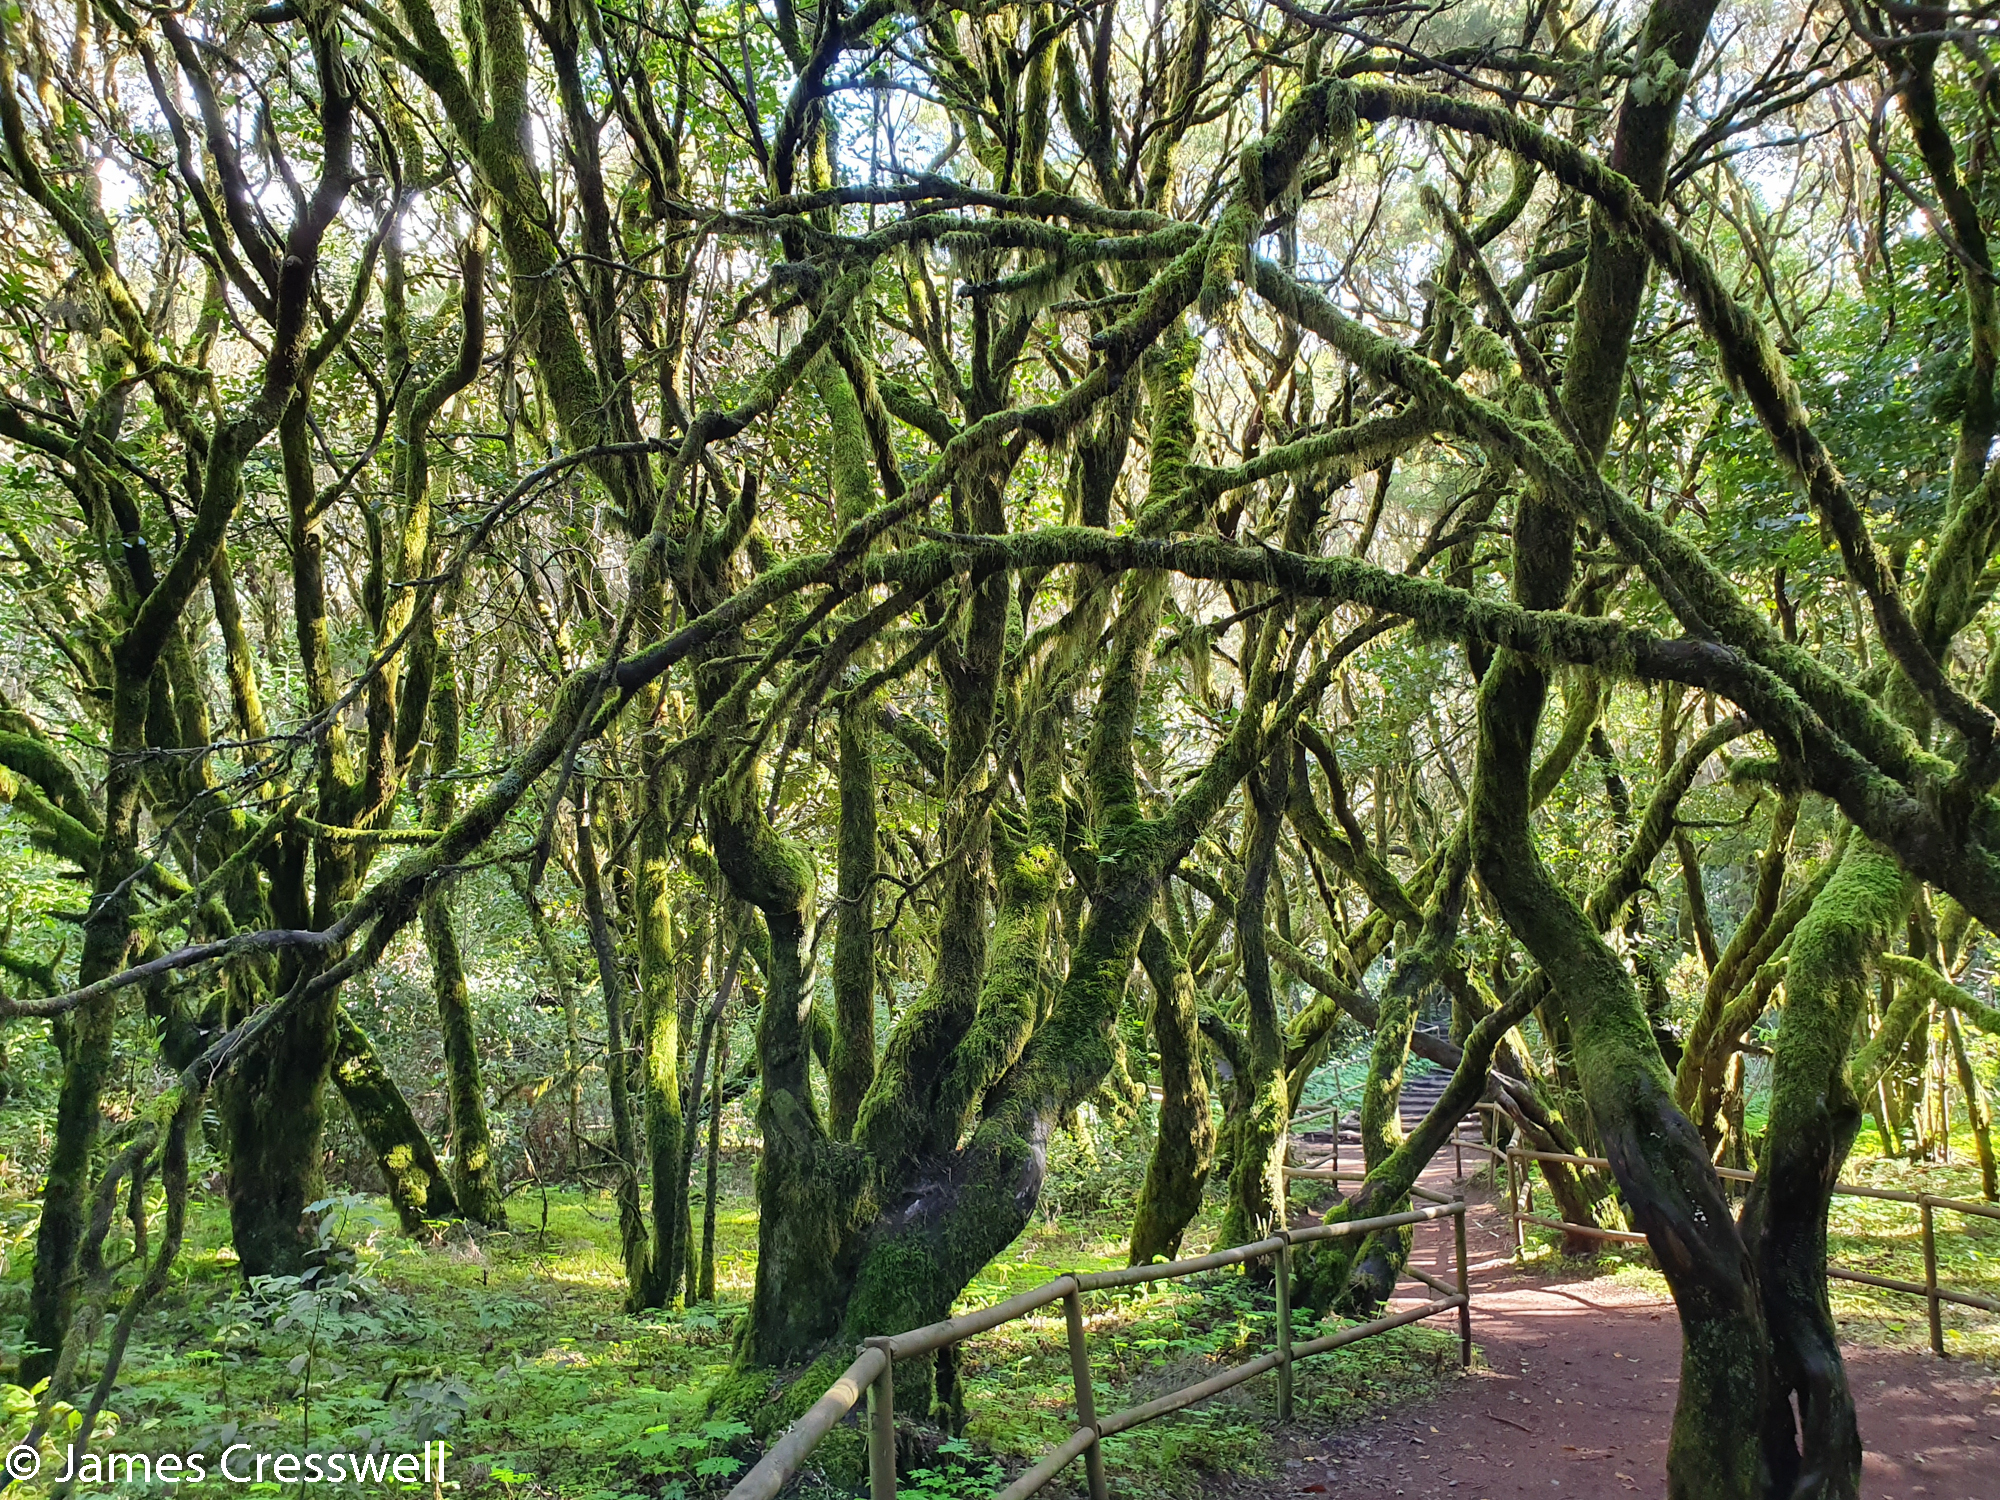 Trees with lichen and moss with a path through